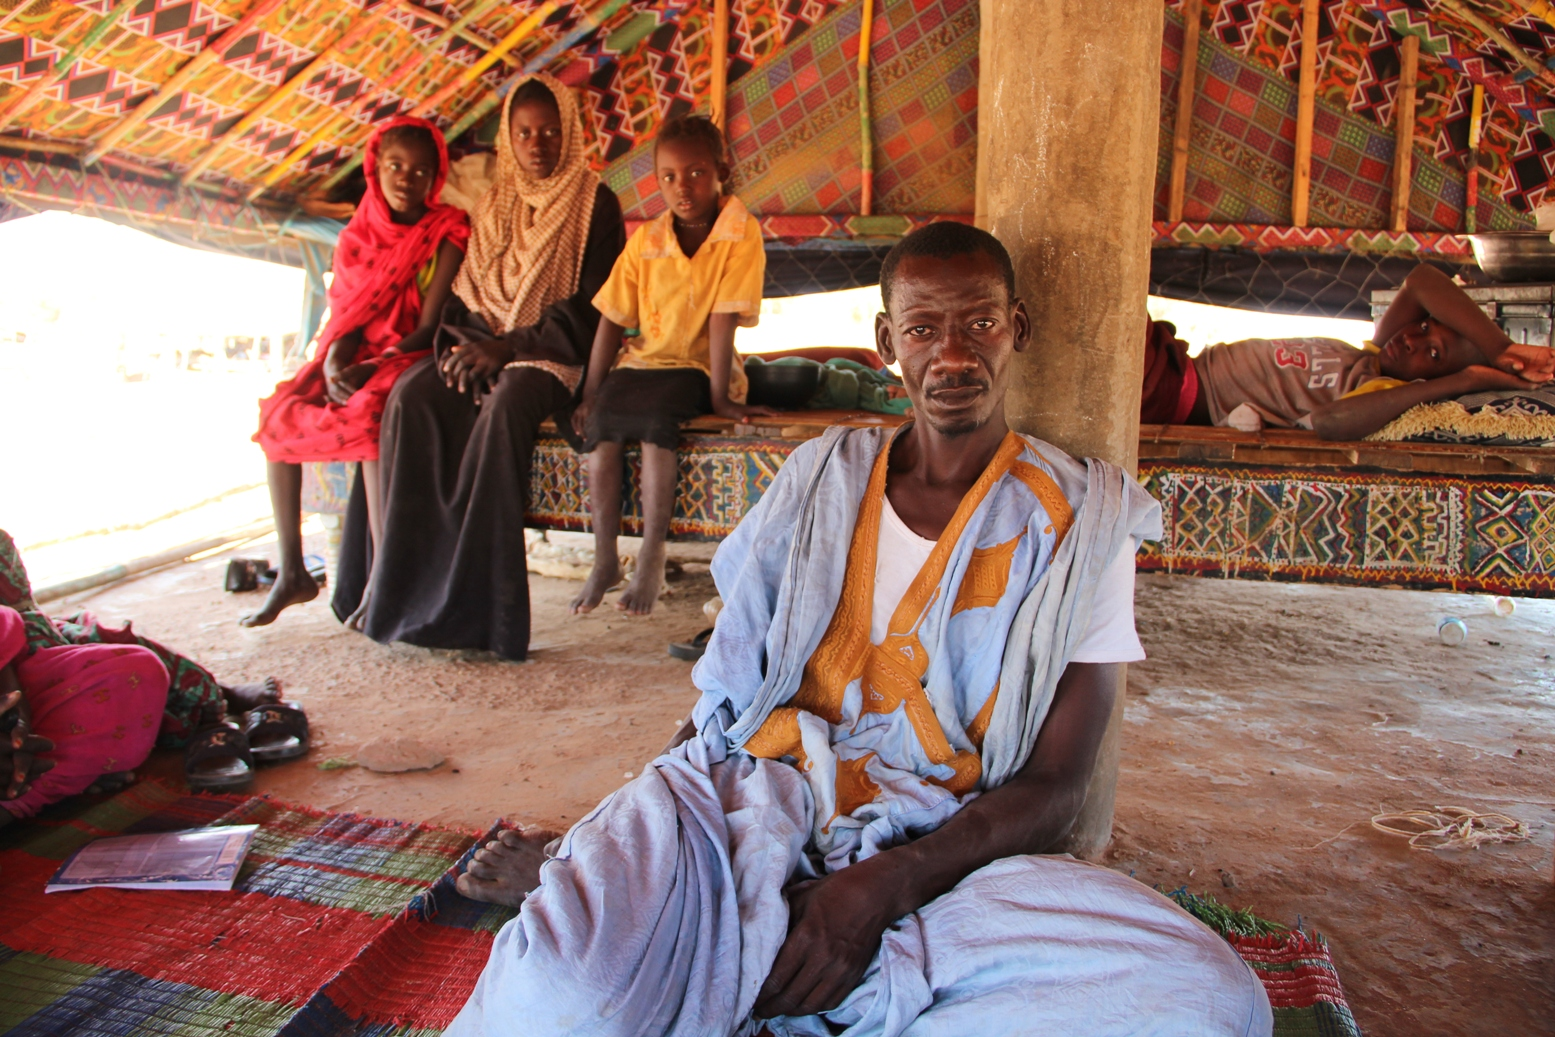 Ishmut Harabass in the village of Thirouth, a dozen km outside of kaedi in Gorgol region, Mauritania. The village grain bank had no stocks in 2012